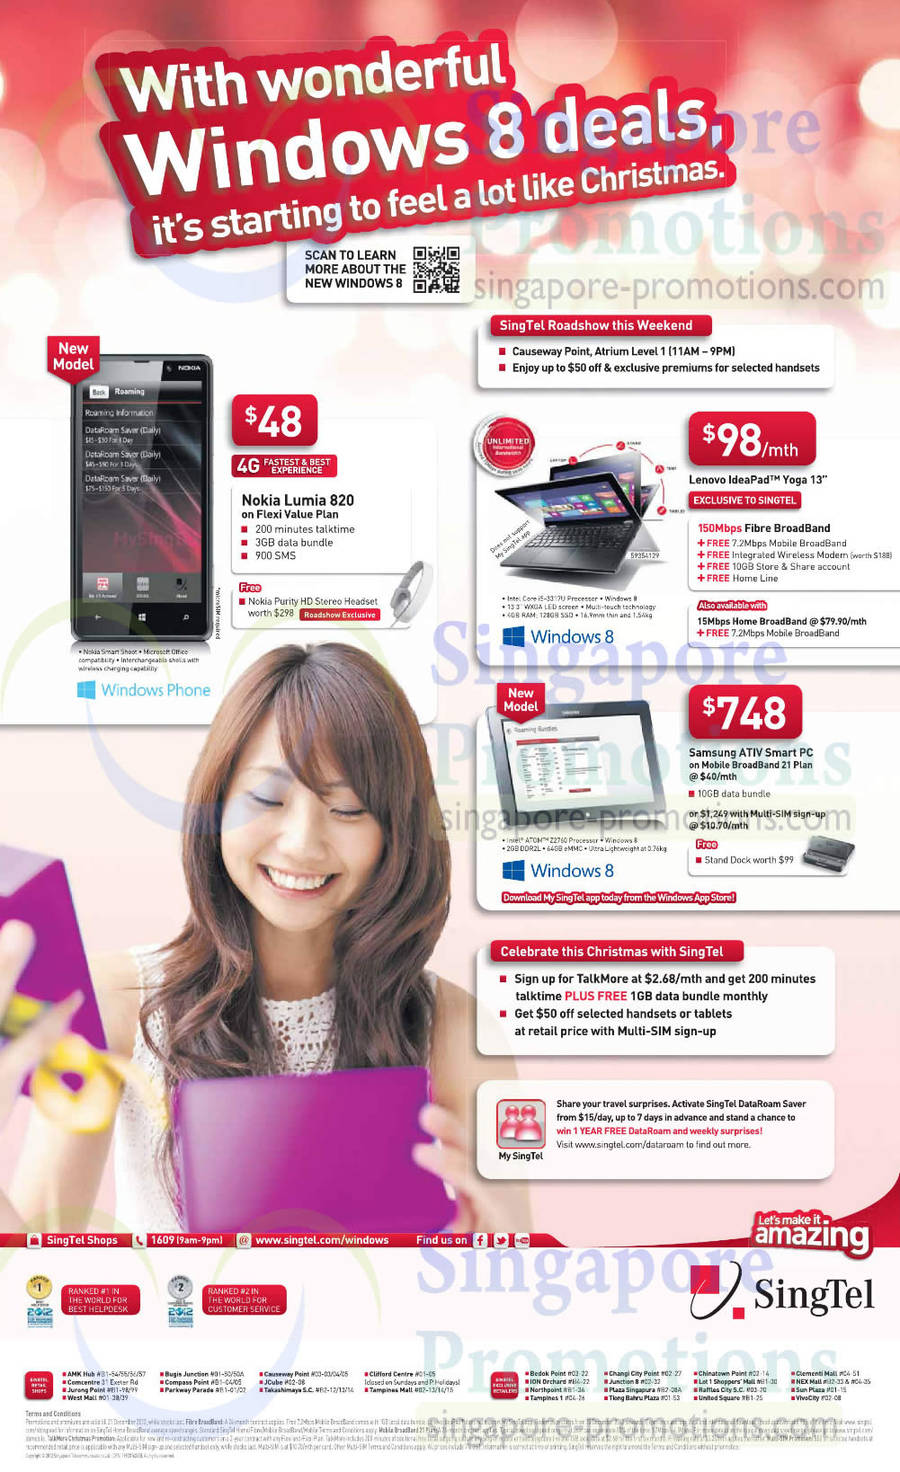 Nokia Lumia 820, Lenovo Ideapad Yoga 13, Samsung ATIV Smart PC on Mobile Broadband 21 Plan